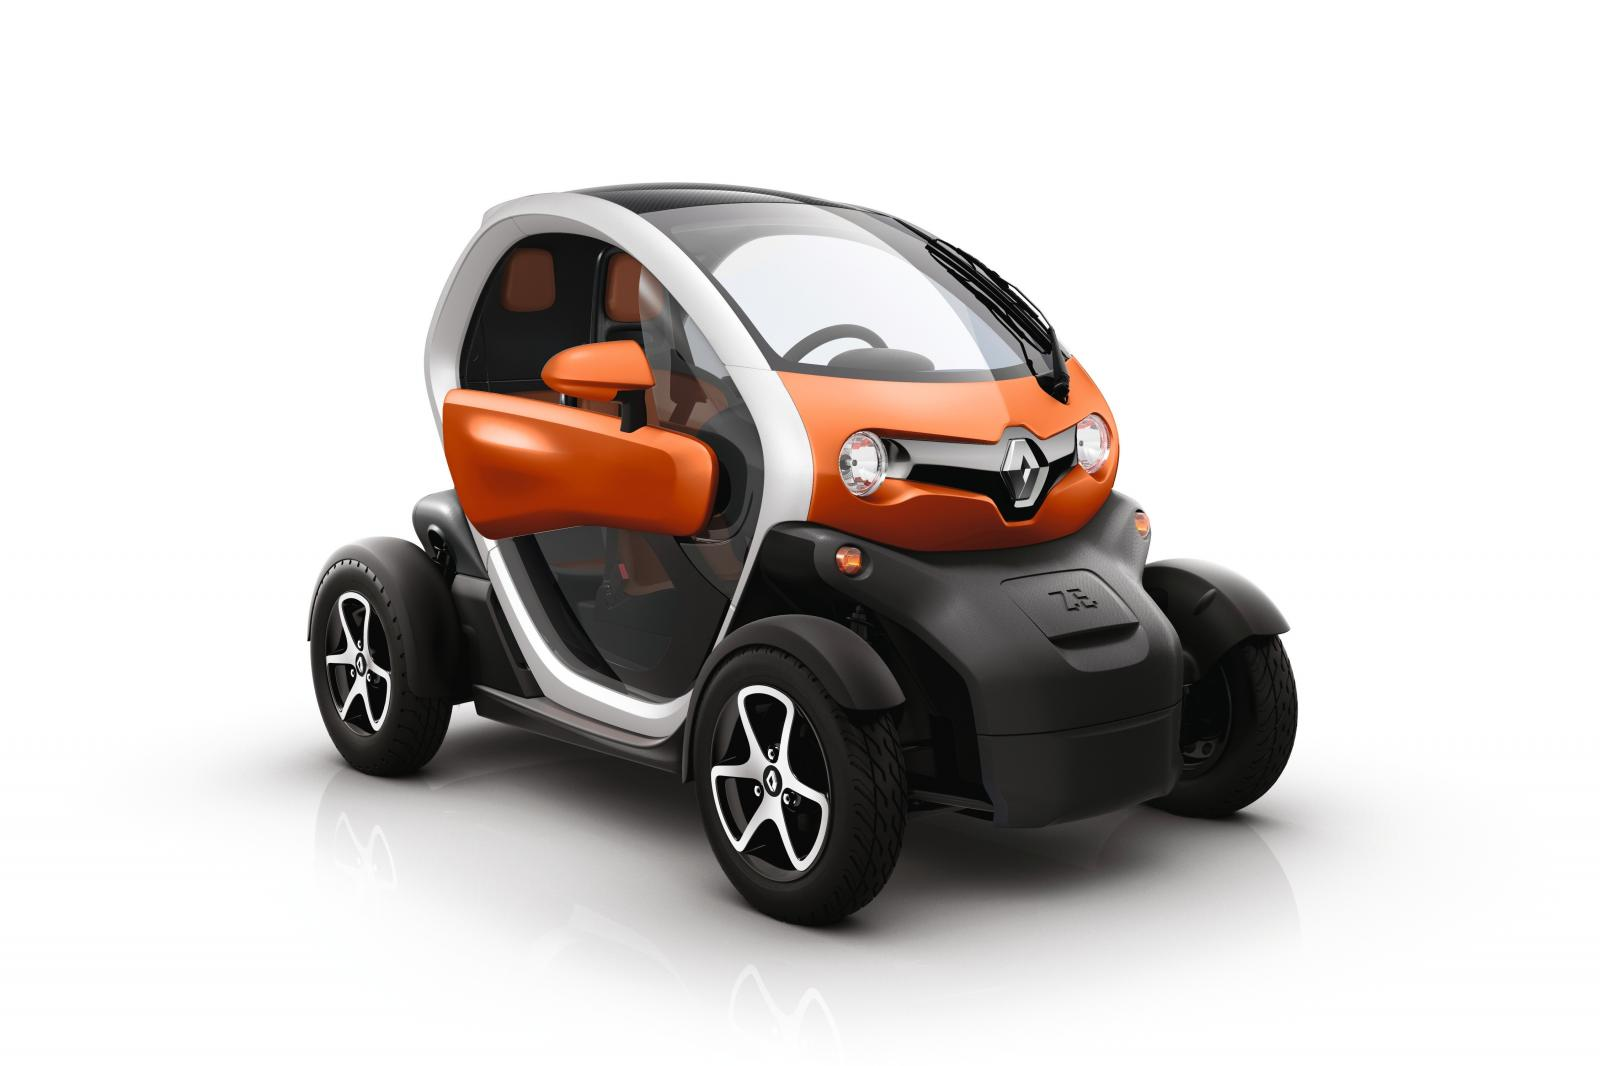 renault twizy mo i e da voze 14 godi njaci auto magazin. Black Bedroom Furniture Sets. Home Design Ideas